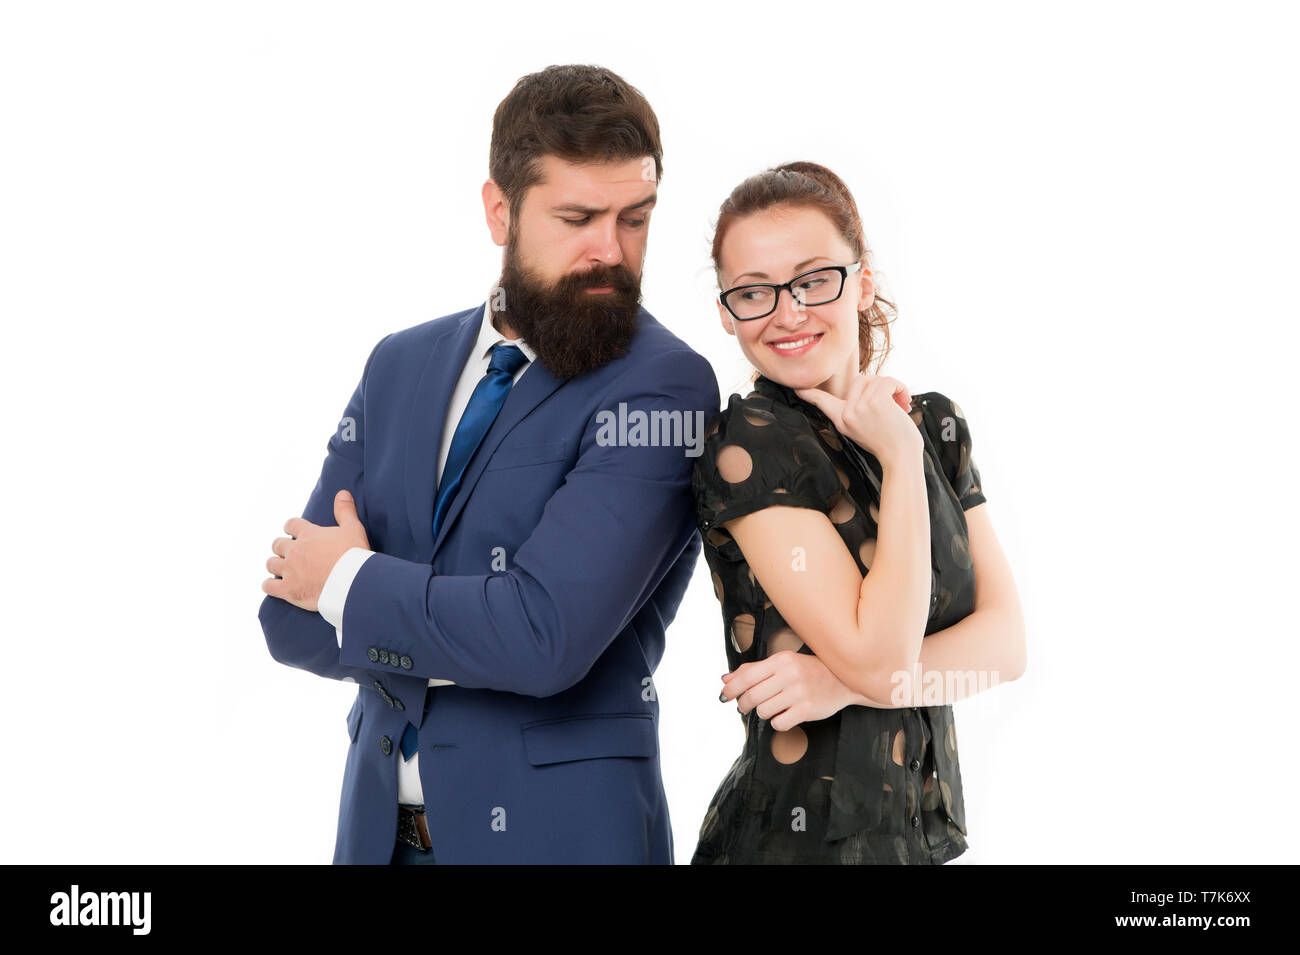 Figure out type of position you would really enjoy. Colleagues looking for new job. Man and woman compete for job position. Labor market competition. Job interview. HR manager. Office job lifestyle. - Stock Image